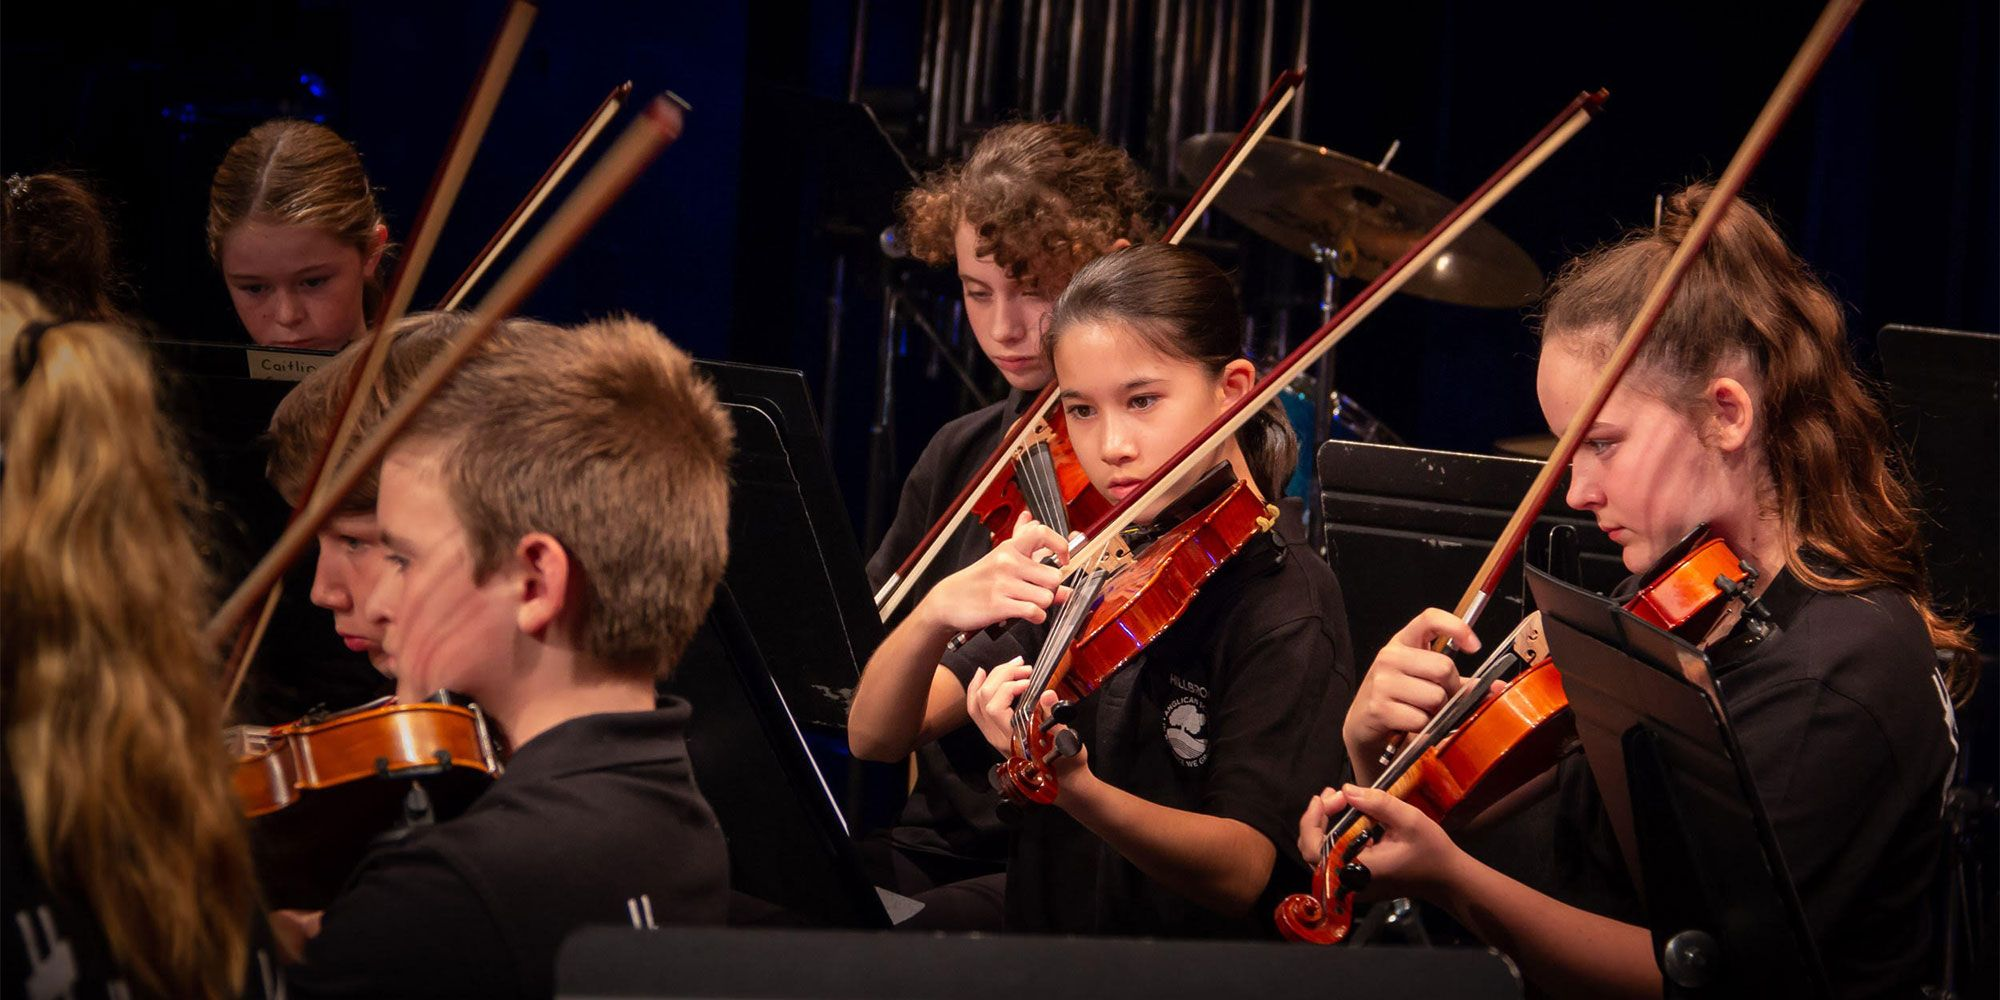 Young children playing string instruments in an orchestra